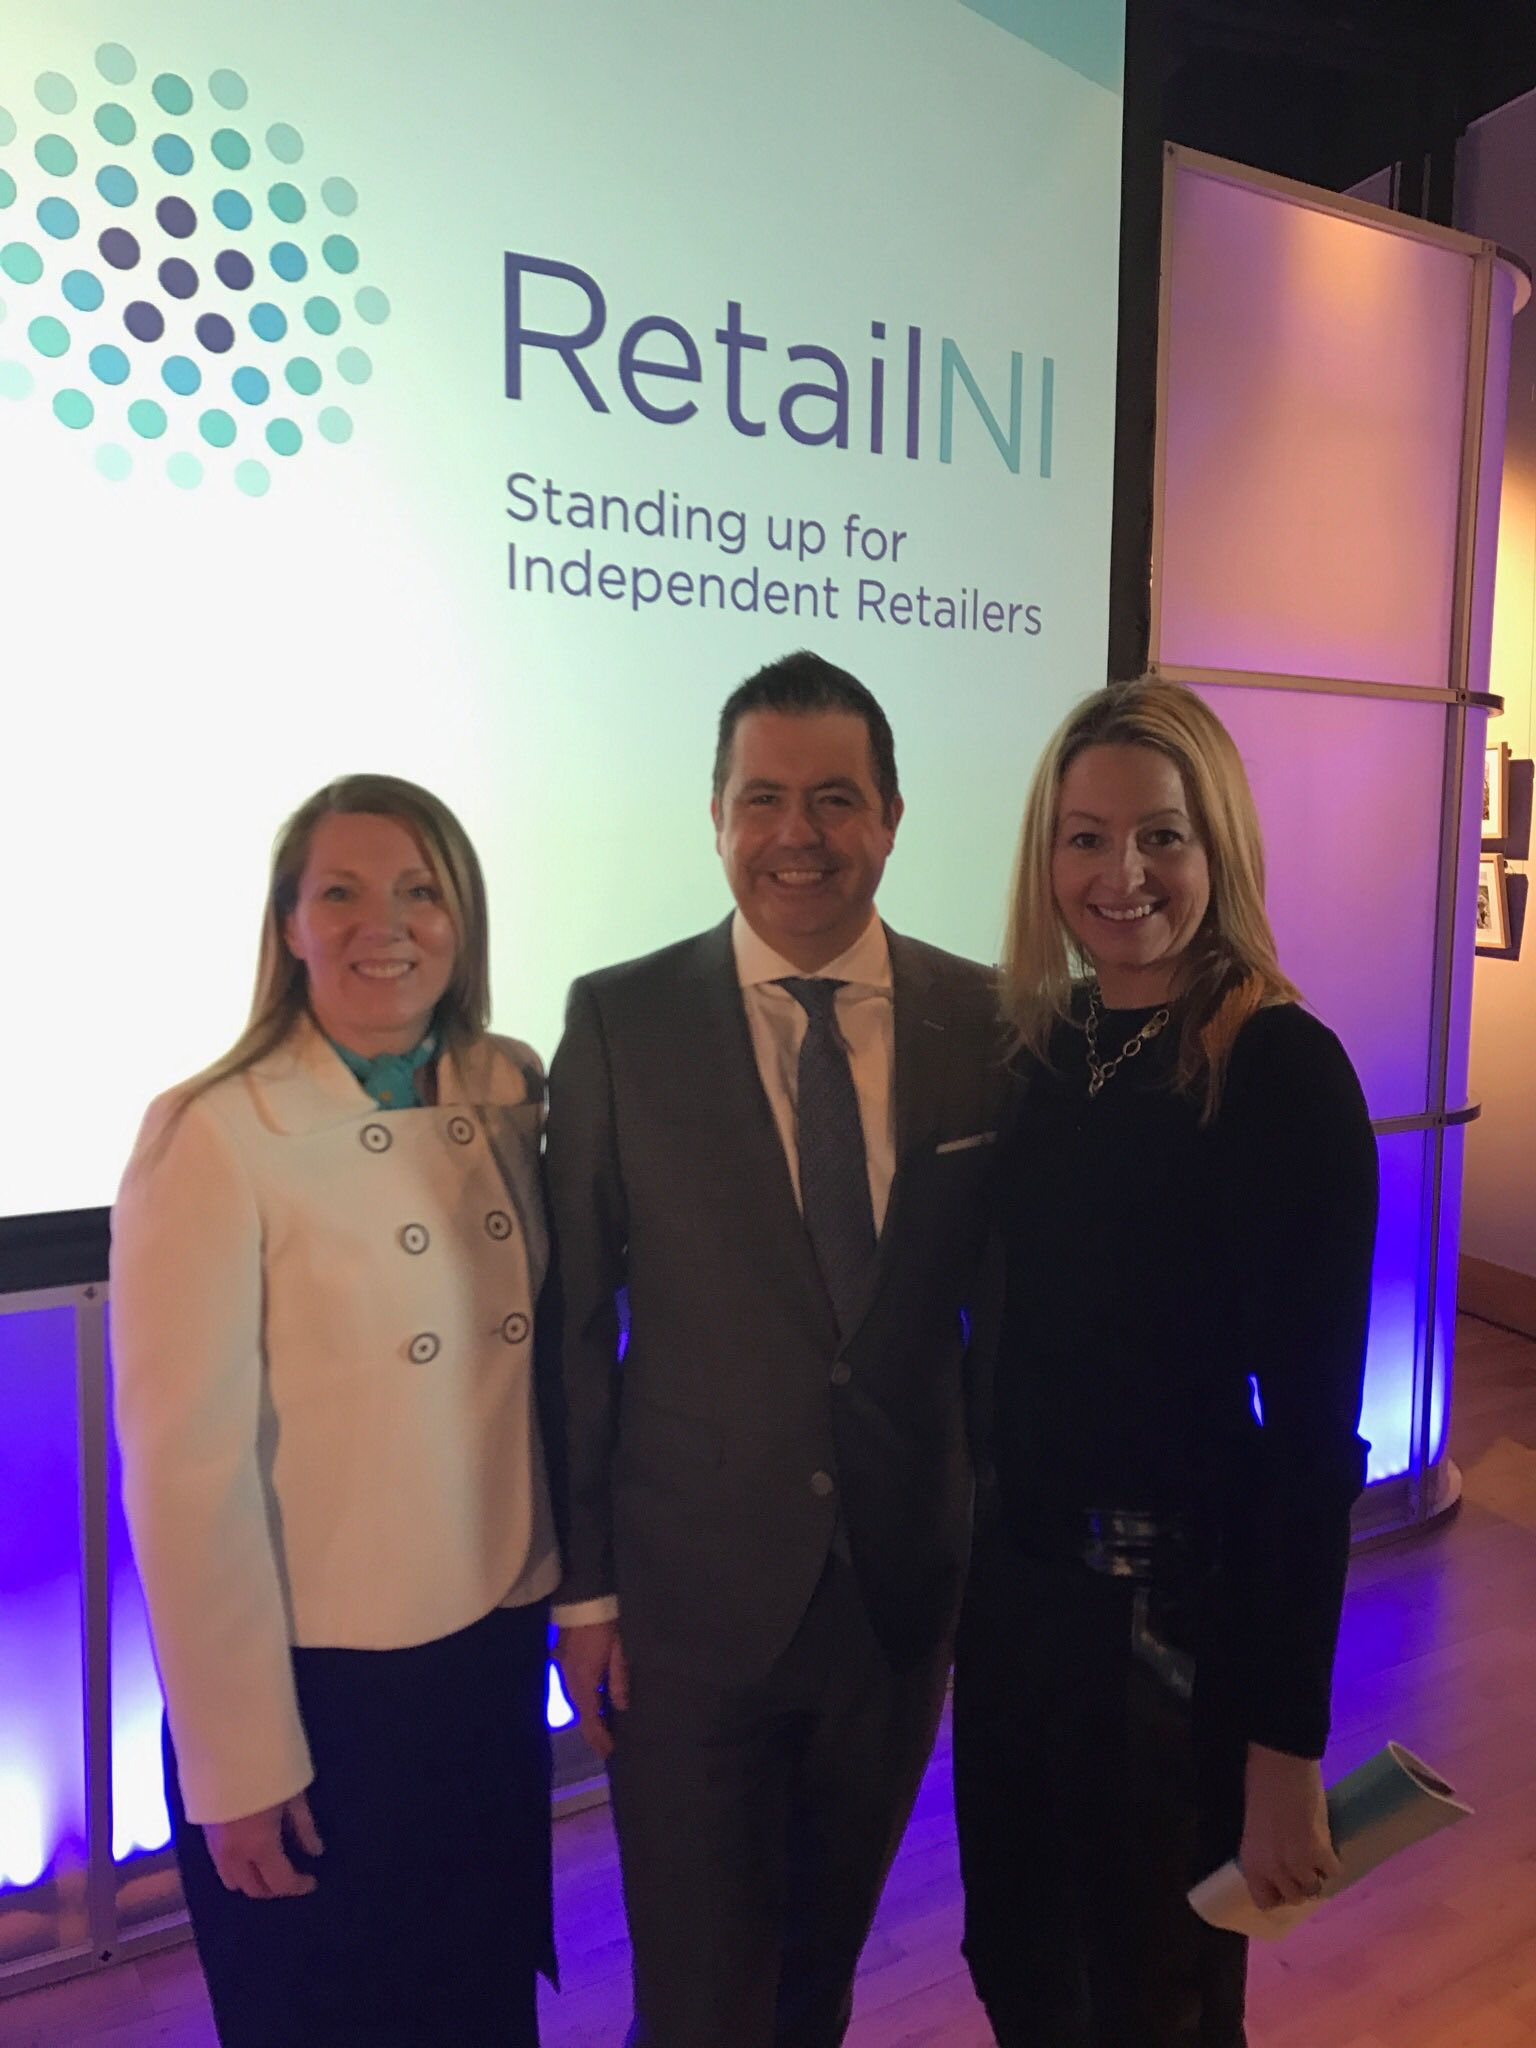 Launch event for #RetailNI at The Titanic, Belfast